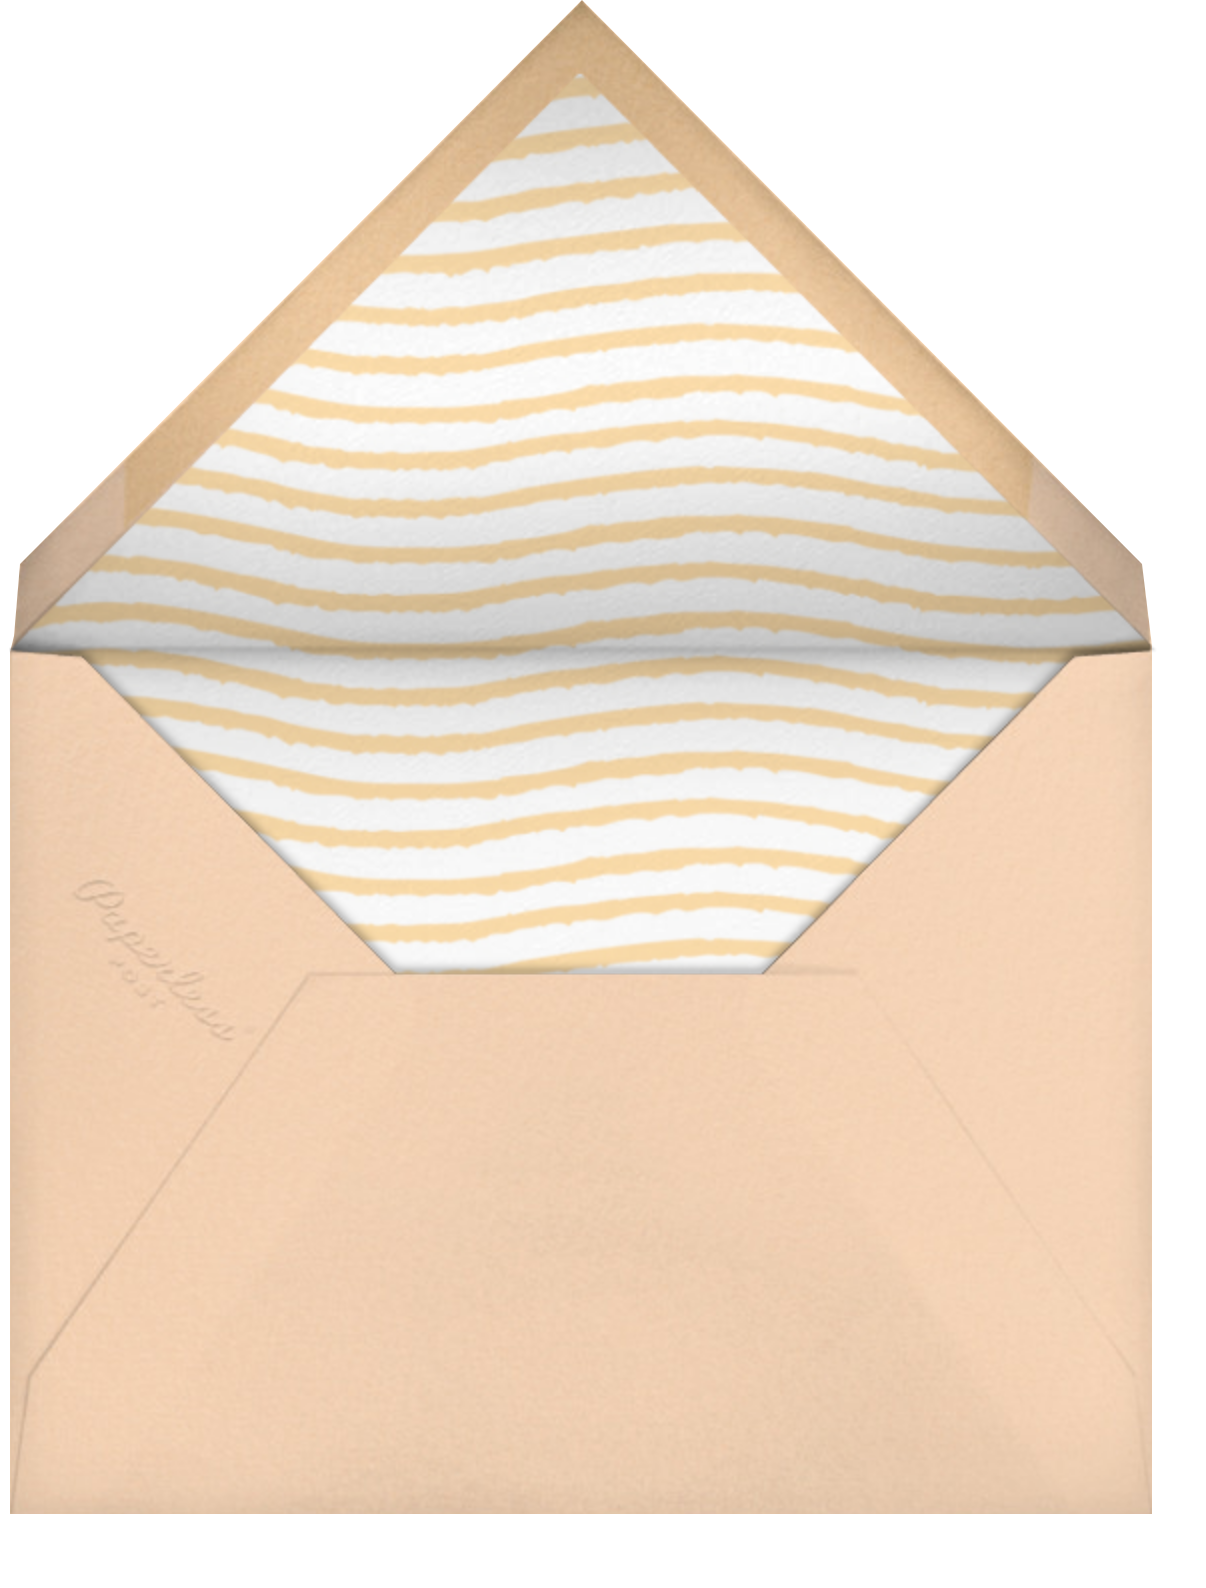 Fish Love - Paperless Post - Thinking of you - envelope back